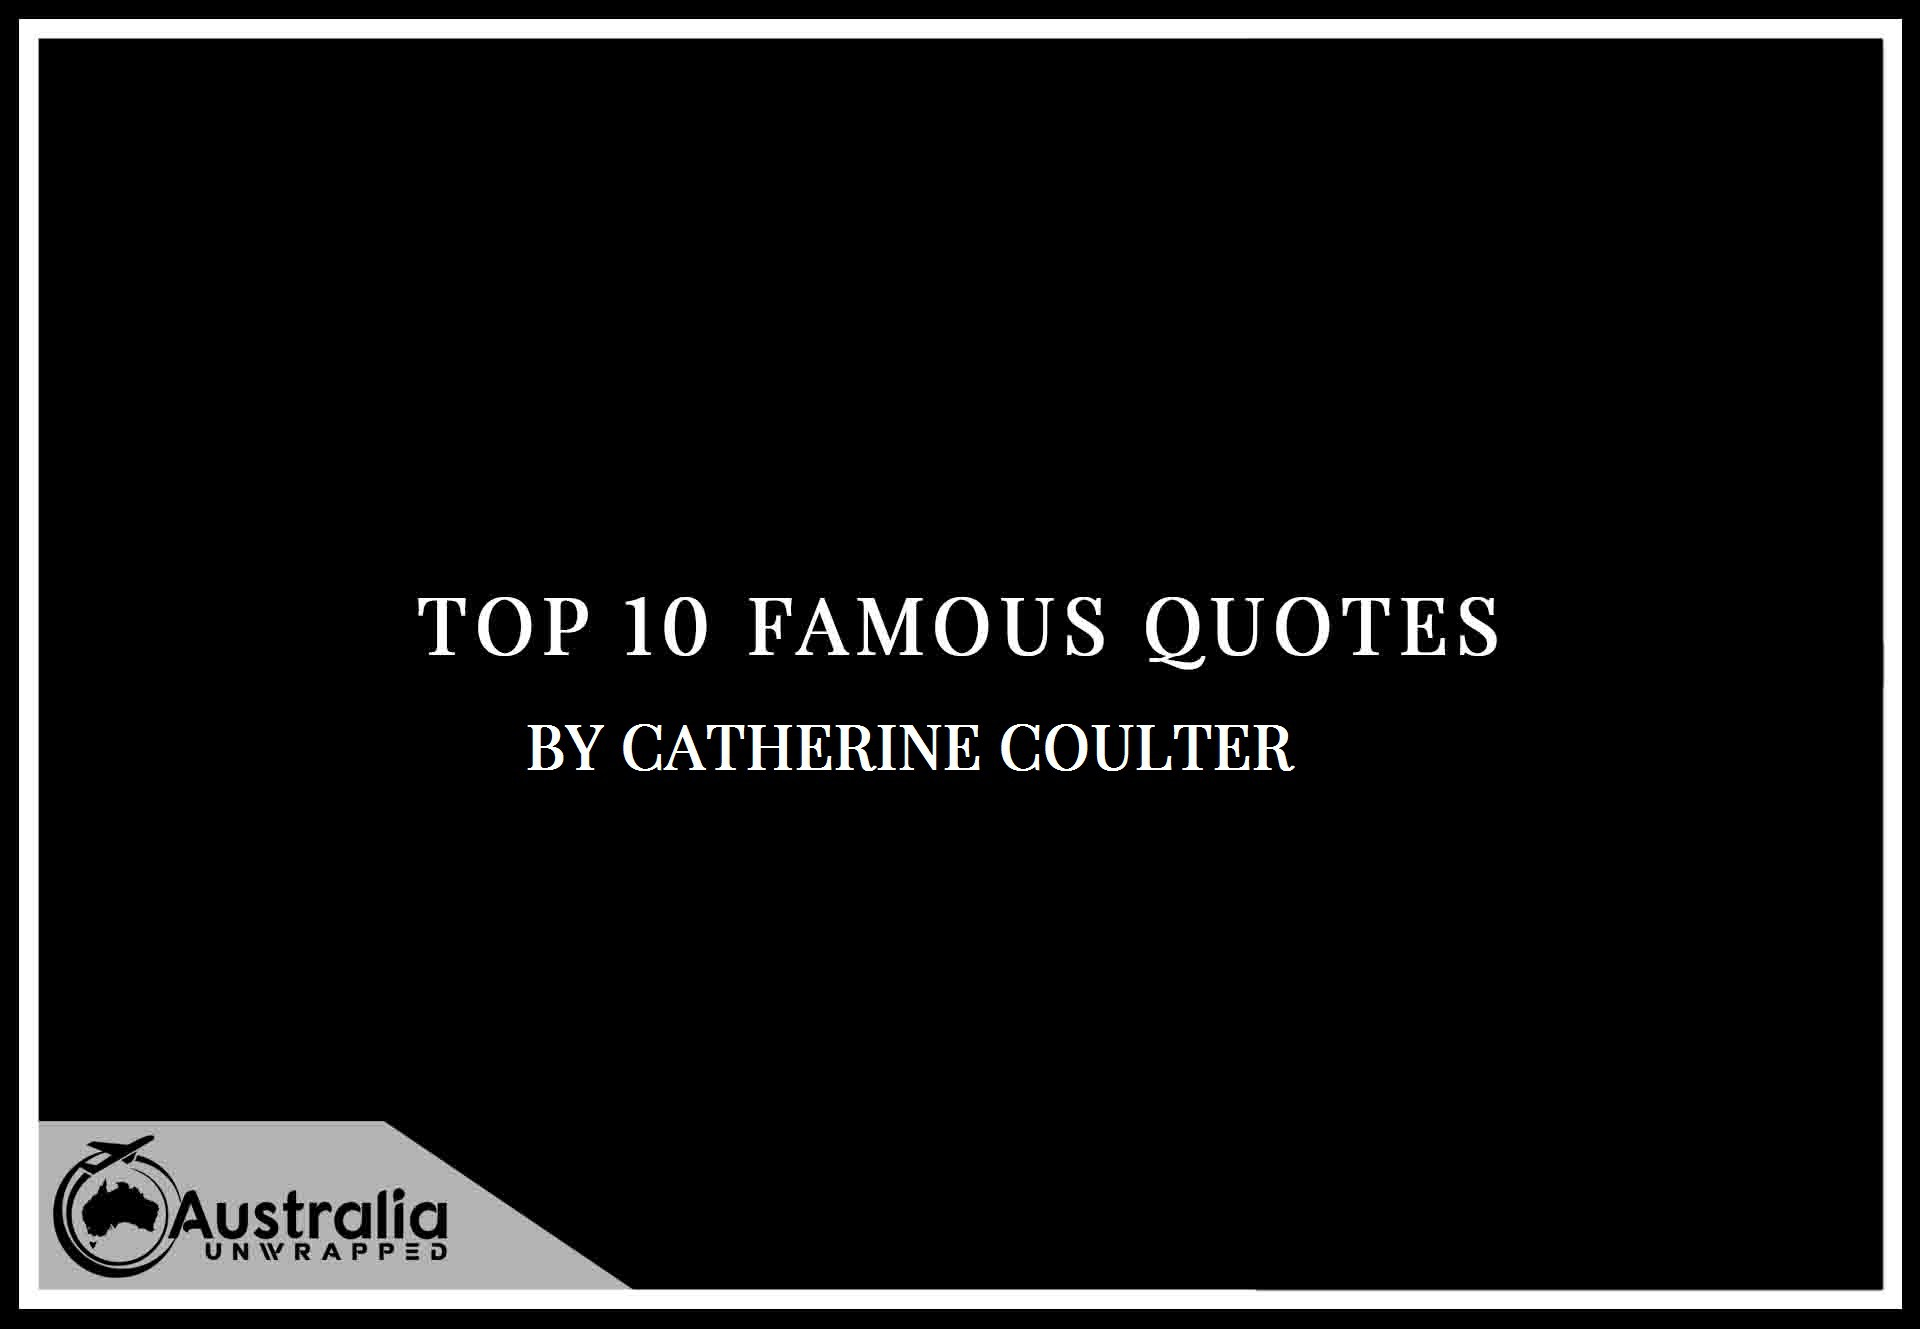 Catherine Coulter's Top 10 Popular and Famous Quotes